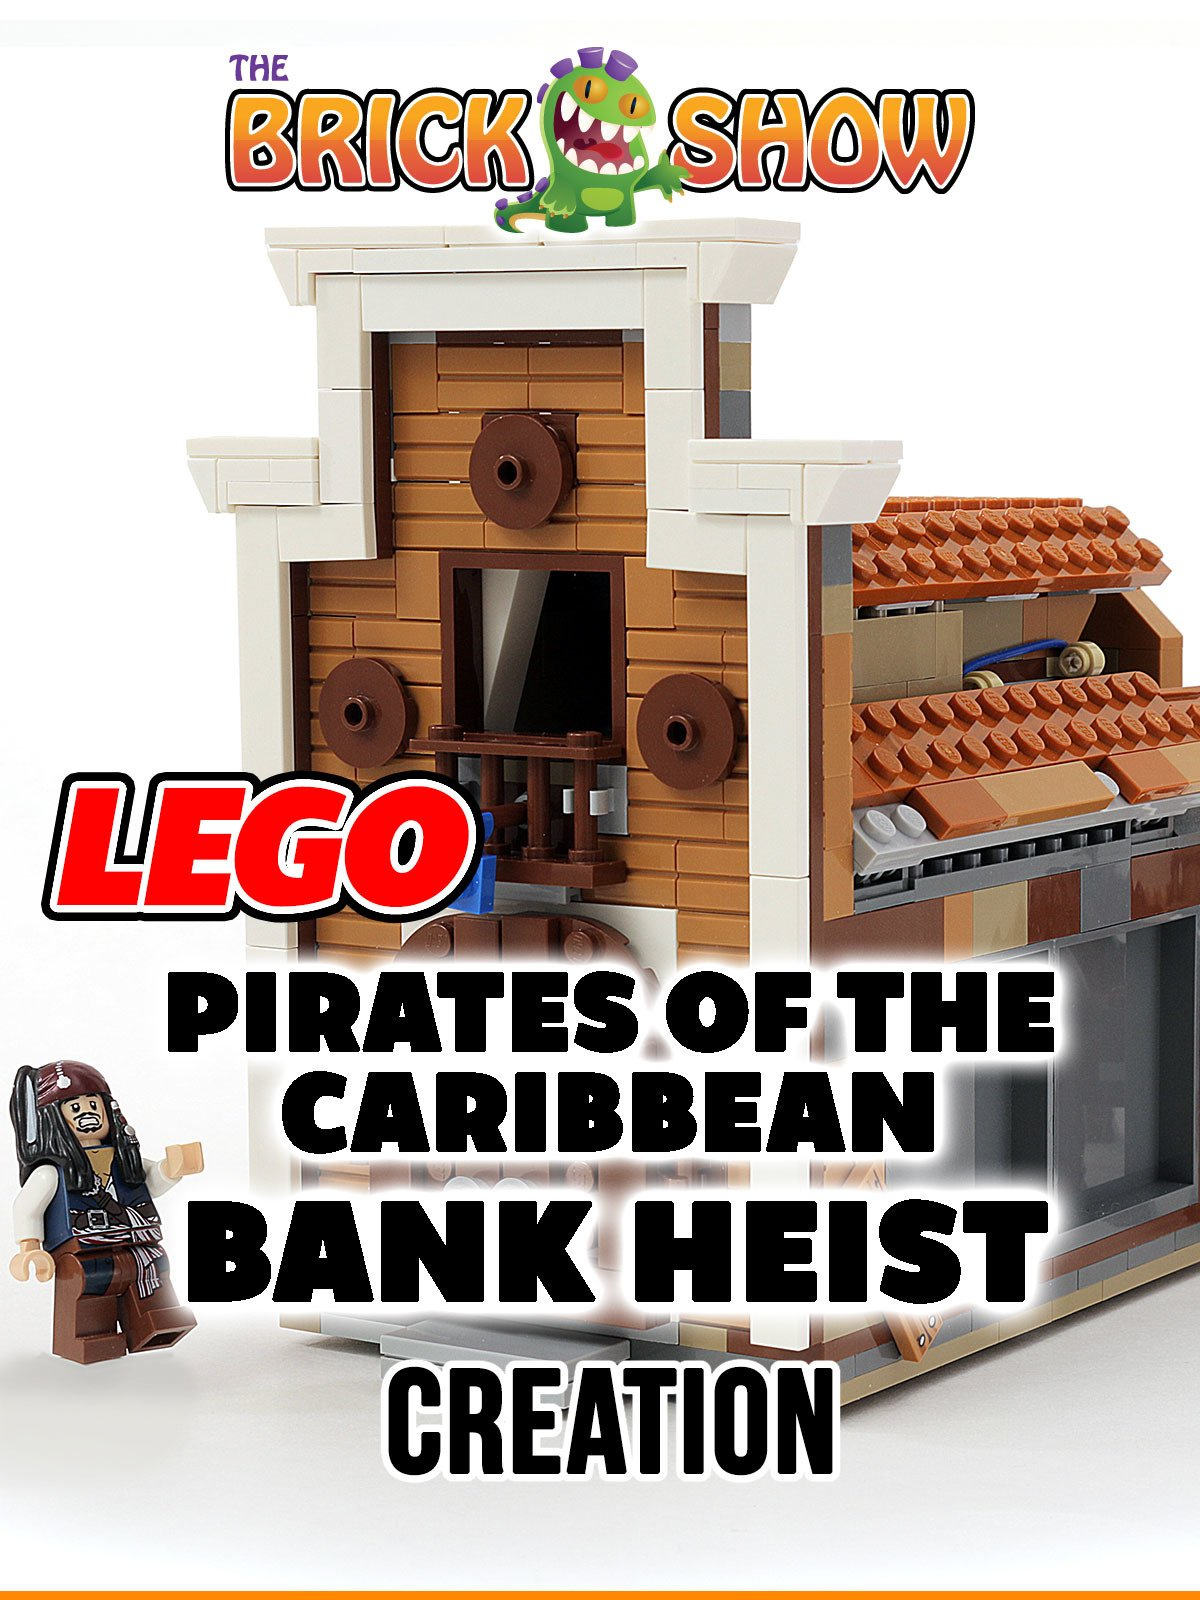 Clip: Lego Pirates of the Caribbean Bank Heist Creation